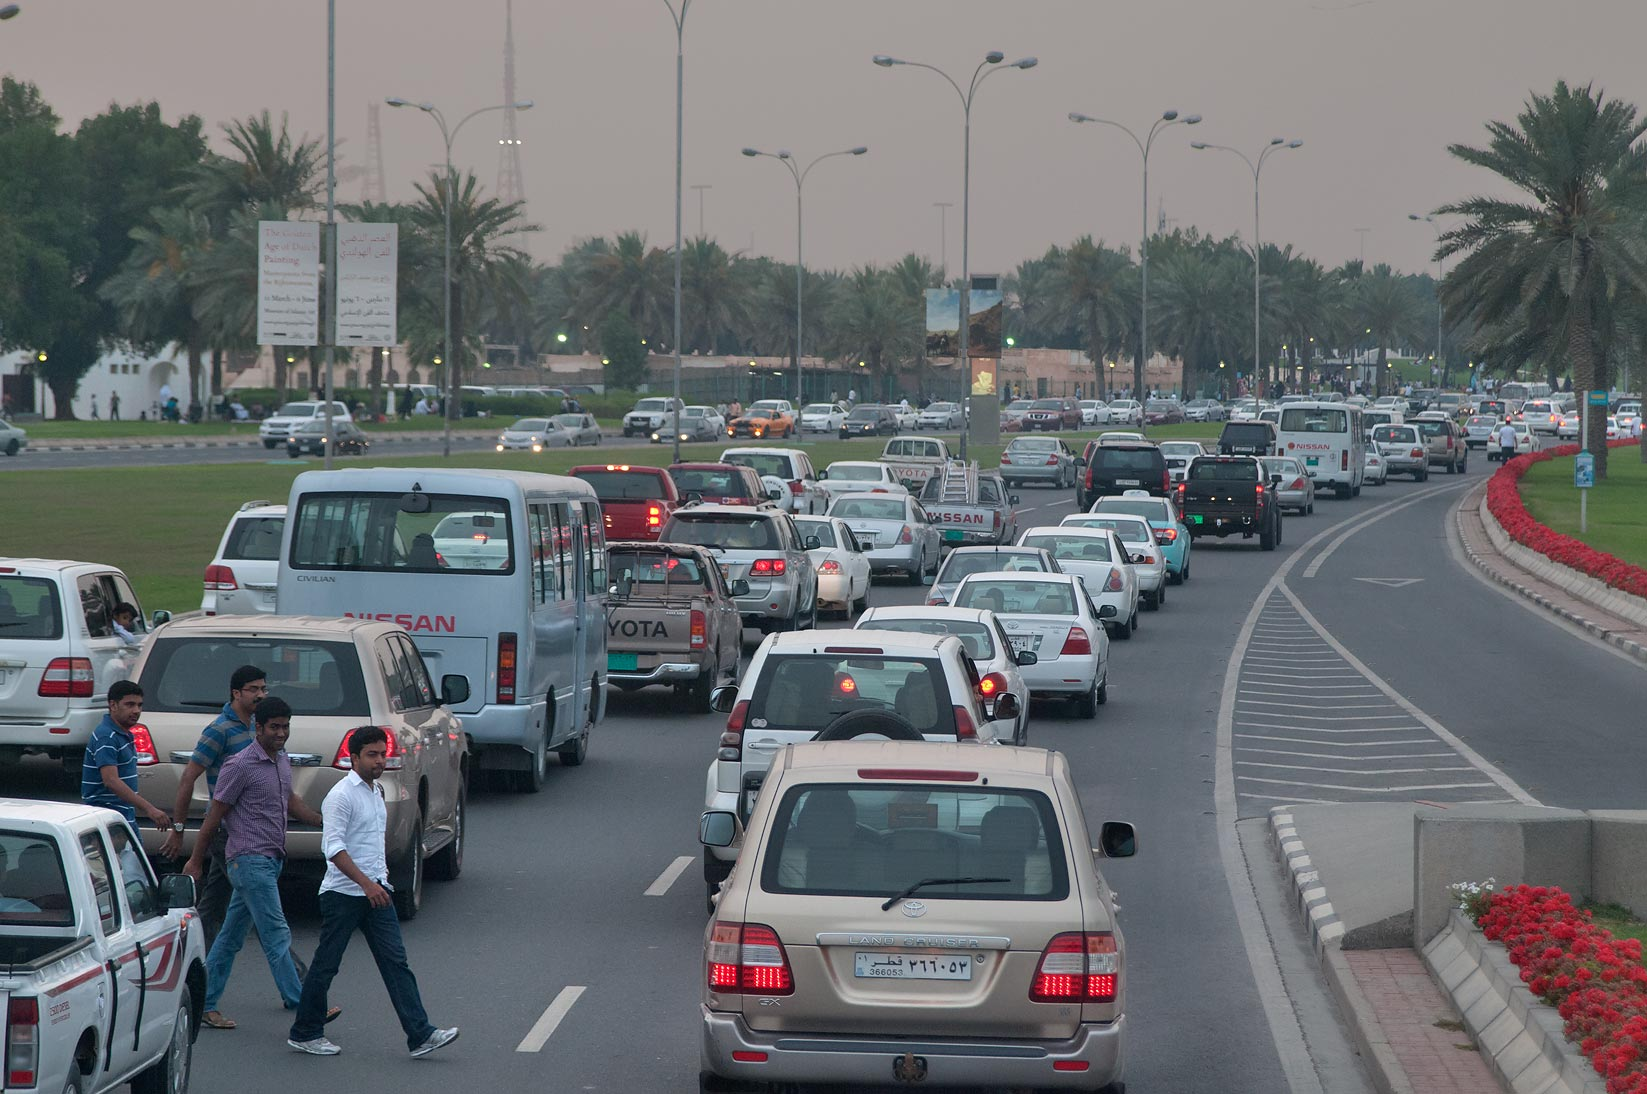 Heavy traffic on Corniche road, view from a window of a bus No. 76. Doha, Qatar